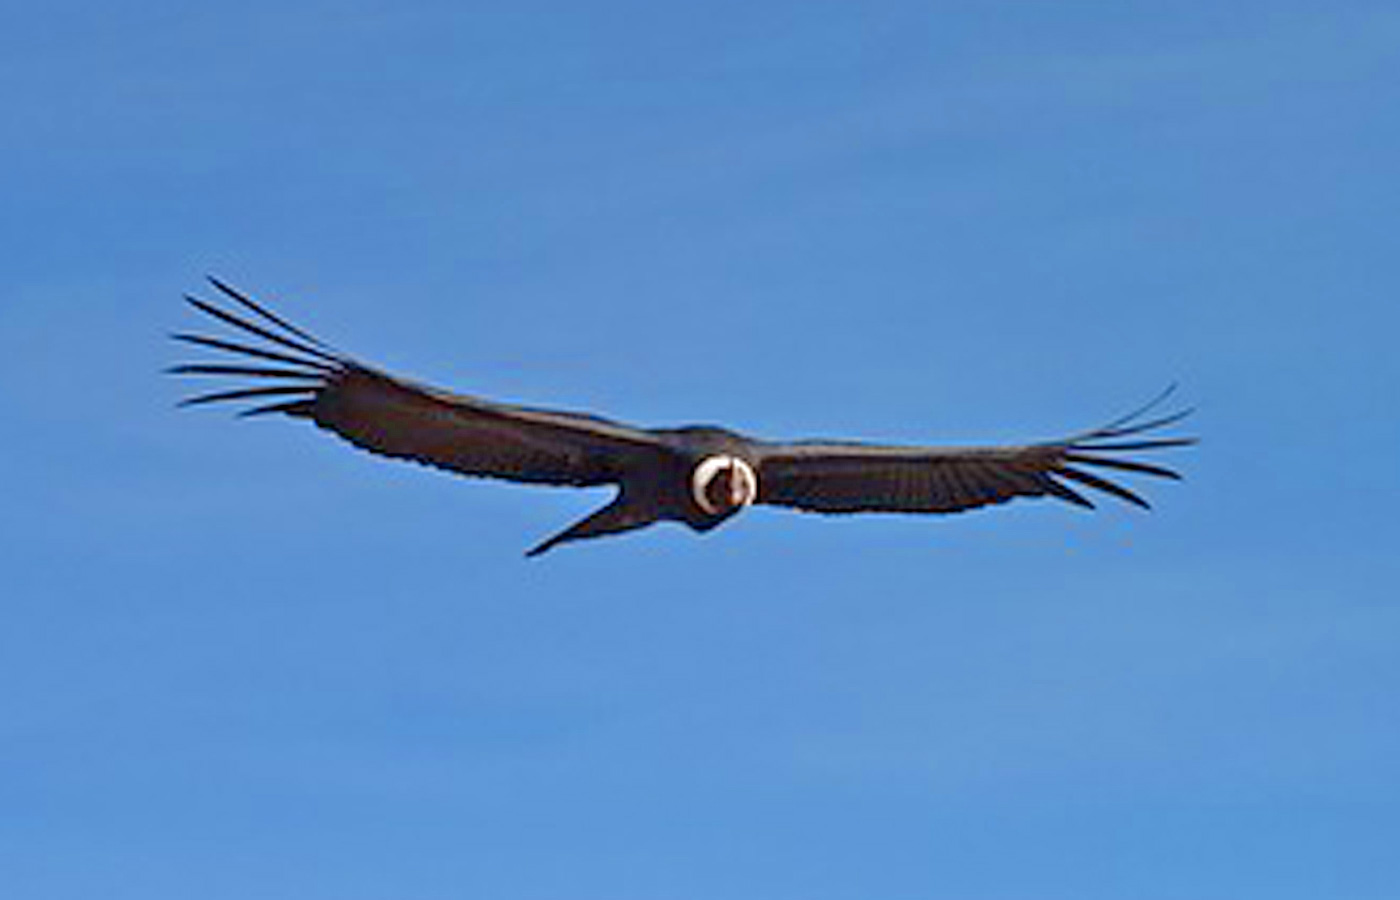 Condor in flight, Luxury holidays to the Colca Canyon, Peru